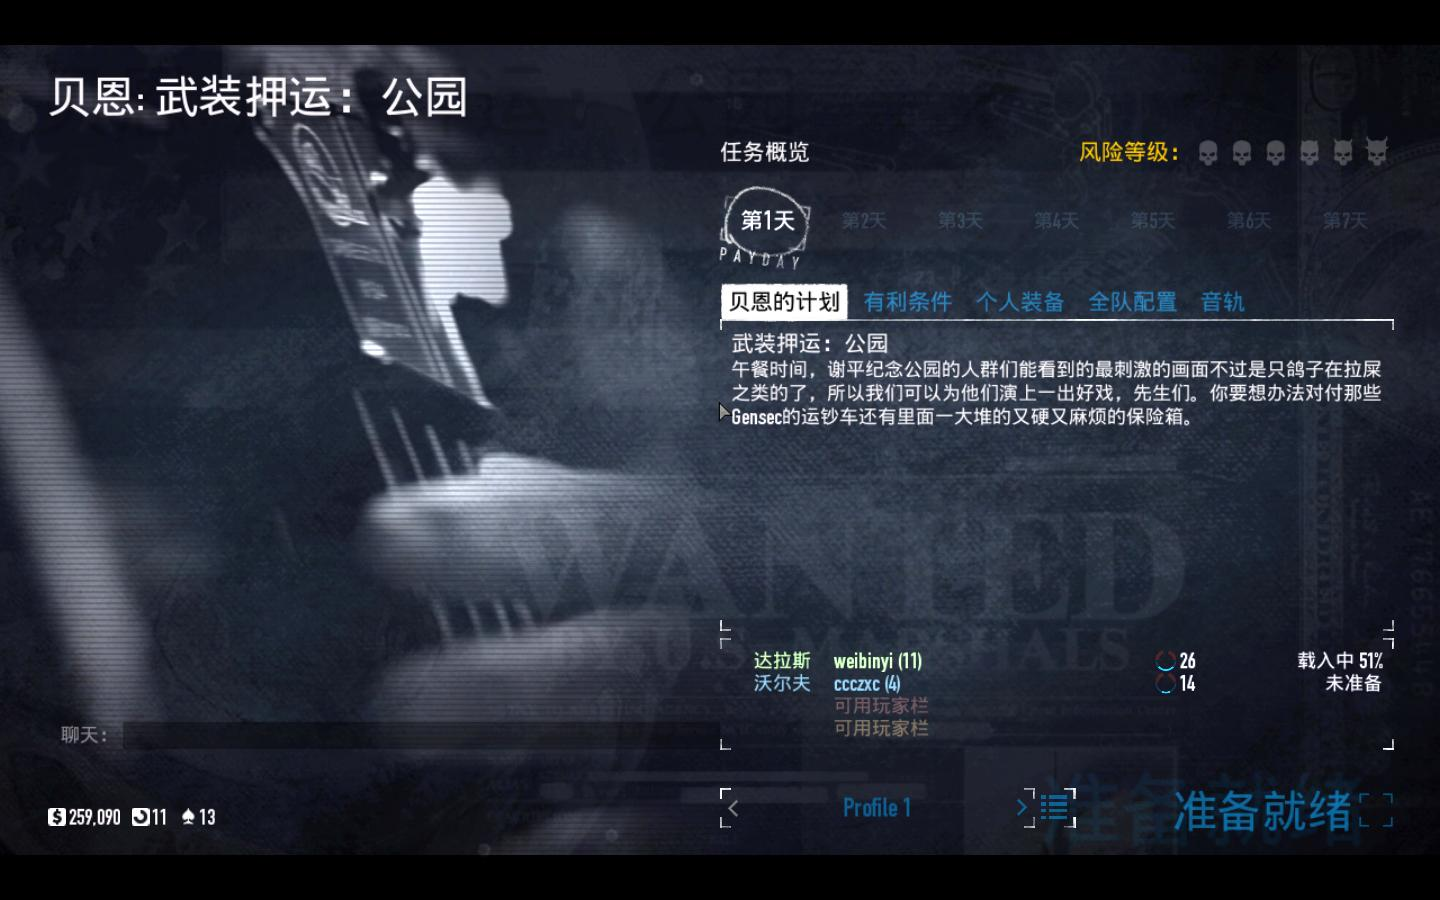 payday2_win32_release 2017-12-15 13-46-53-20.jpg